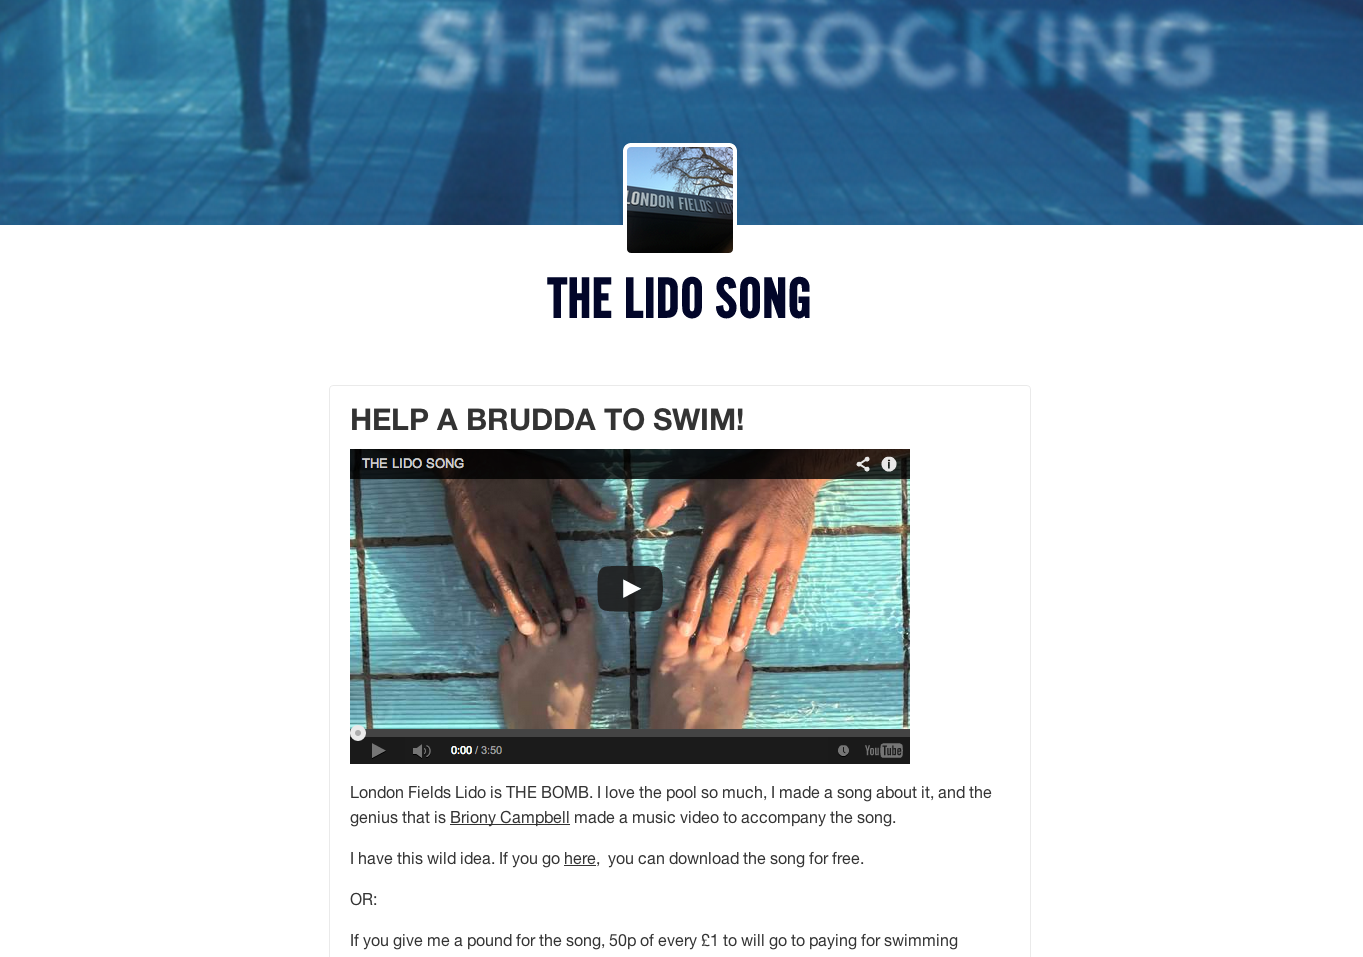 Video > The Lido Song by Shane Solanki : Music for social good